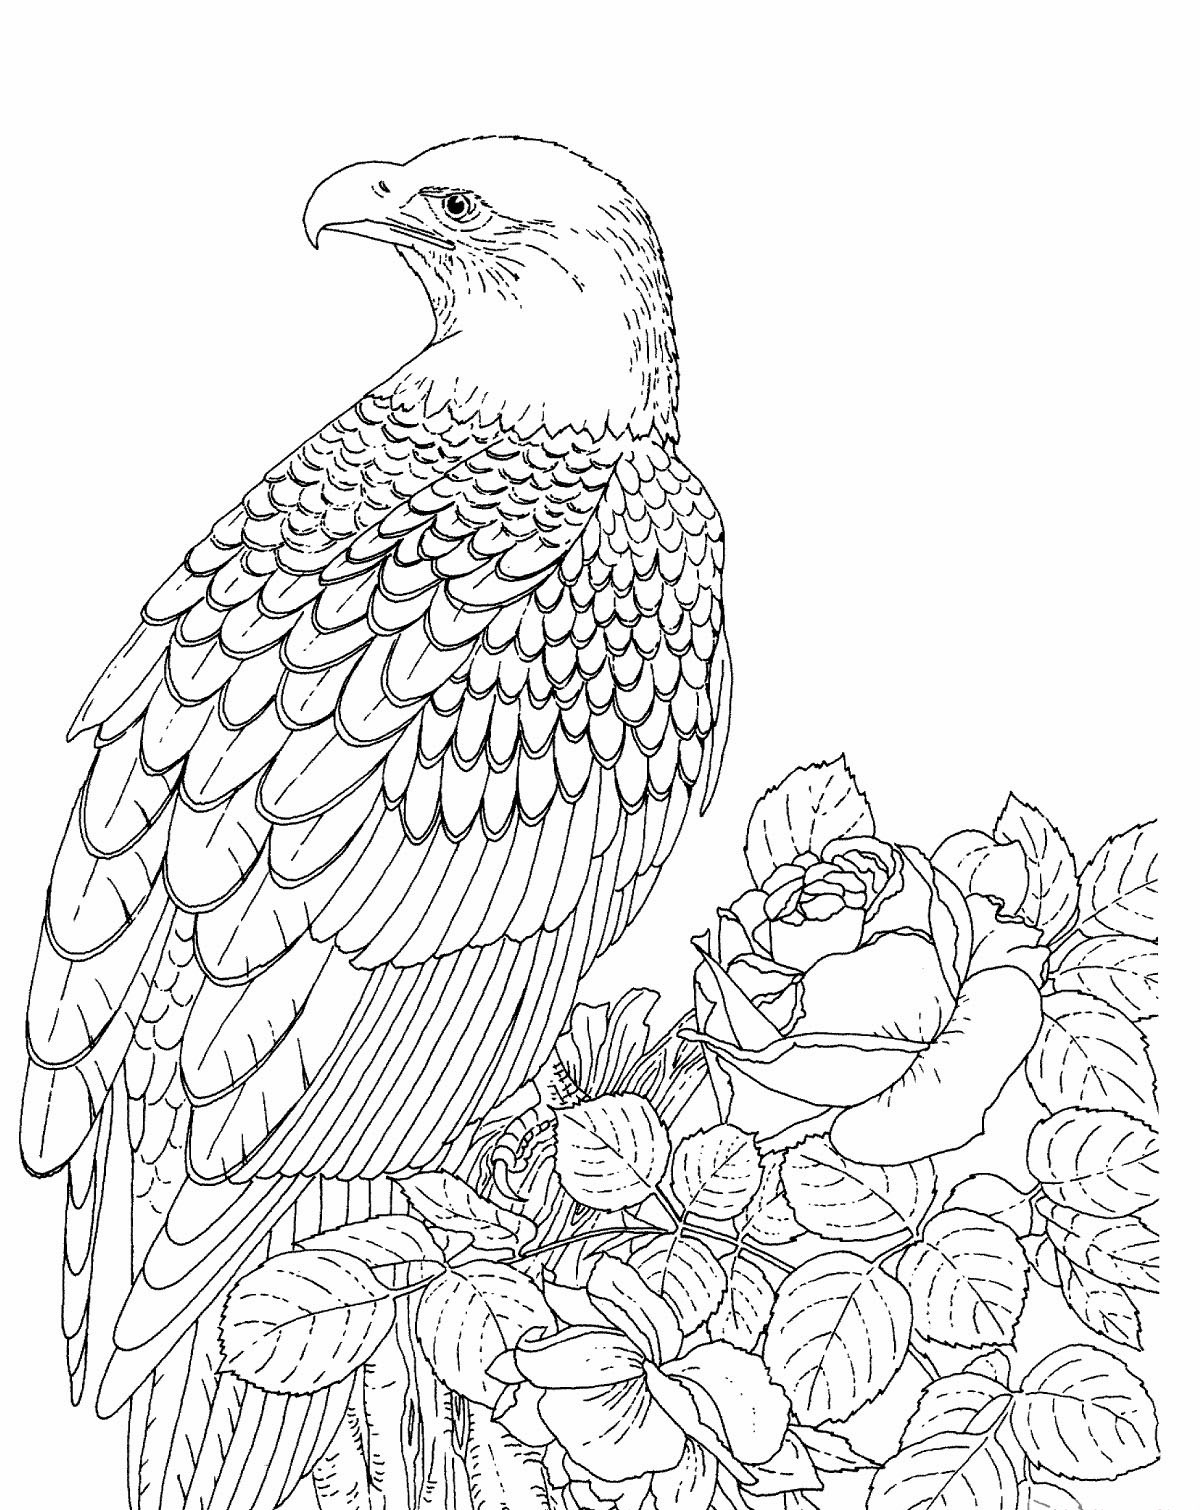 eagle coloring sheet free printable eagle coloring pages for kids eagle sheet coloring